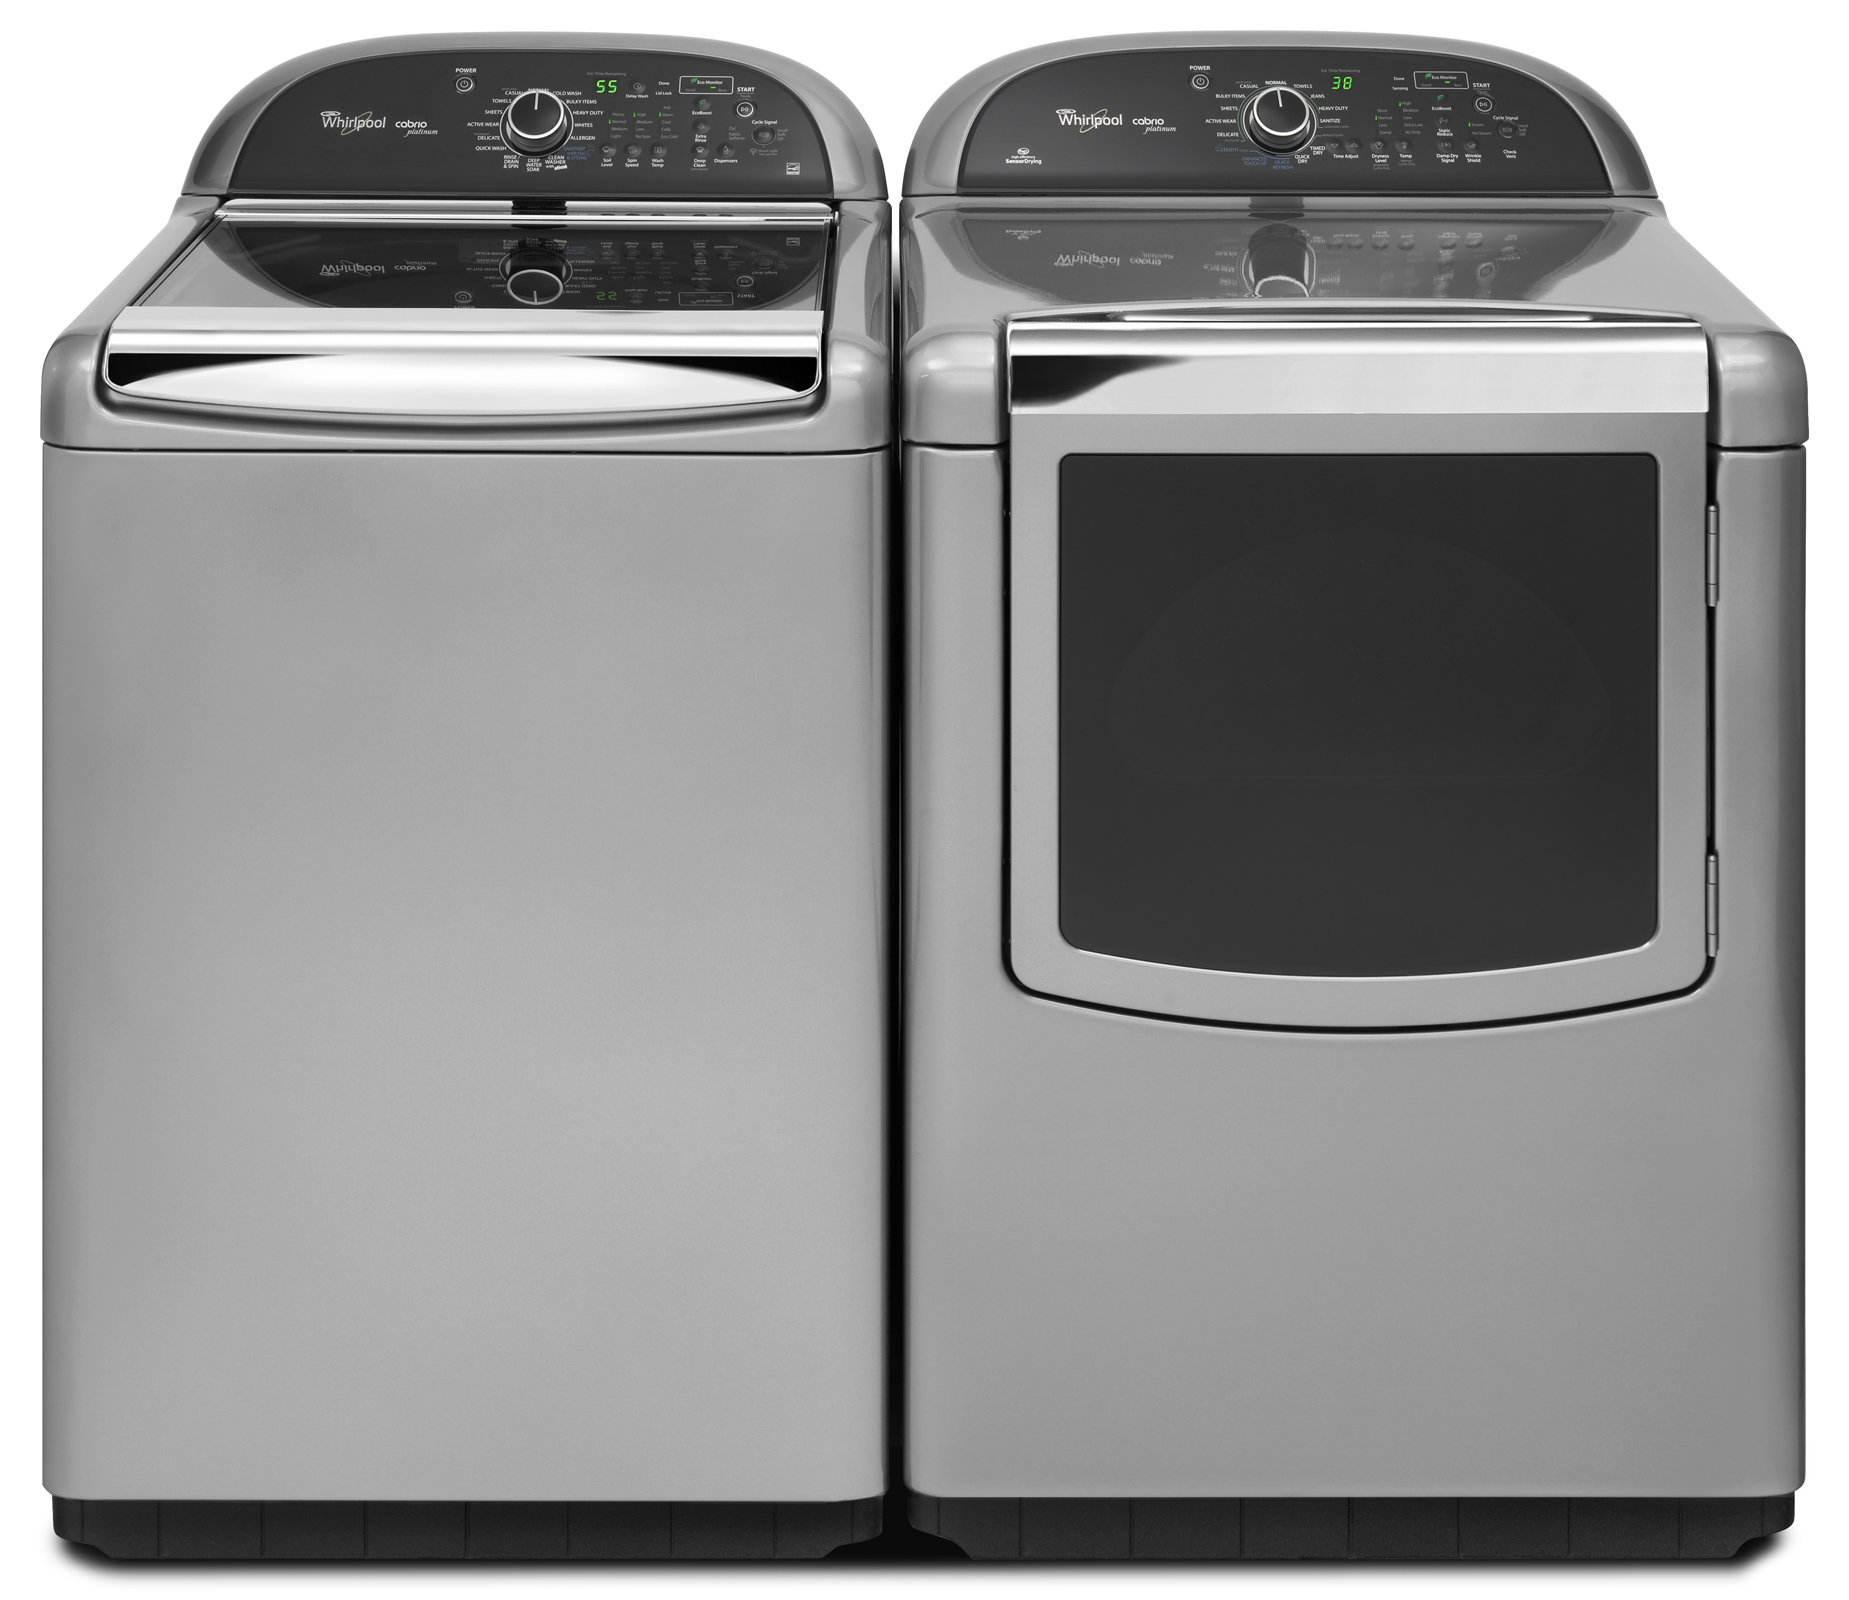 Whirlpool 7.6 cu. ft. Cabrio® Platinum Gas Dryer with Enhanced Touch Up Steam Cycle - Chrome Shadow